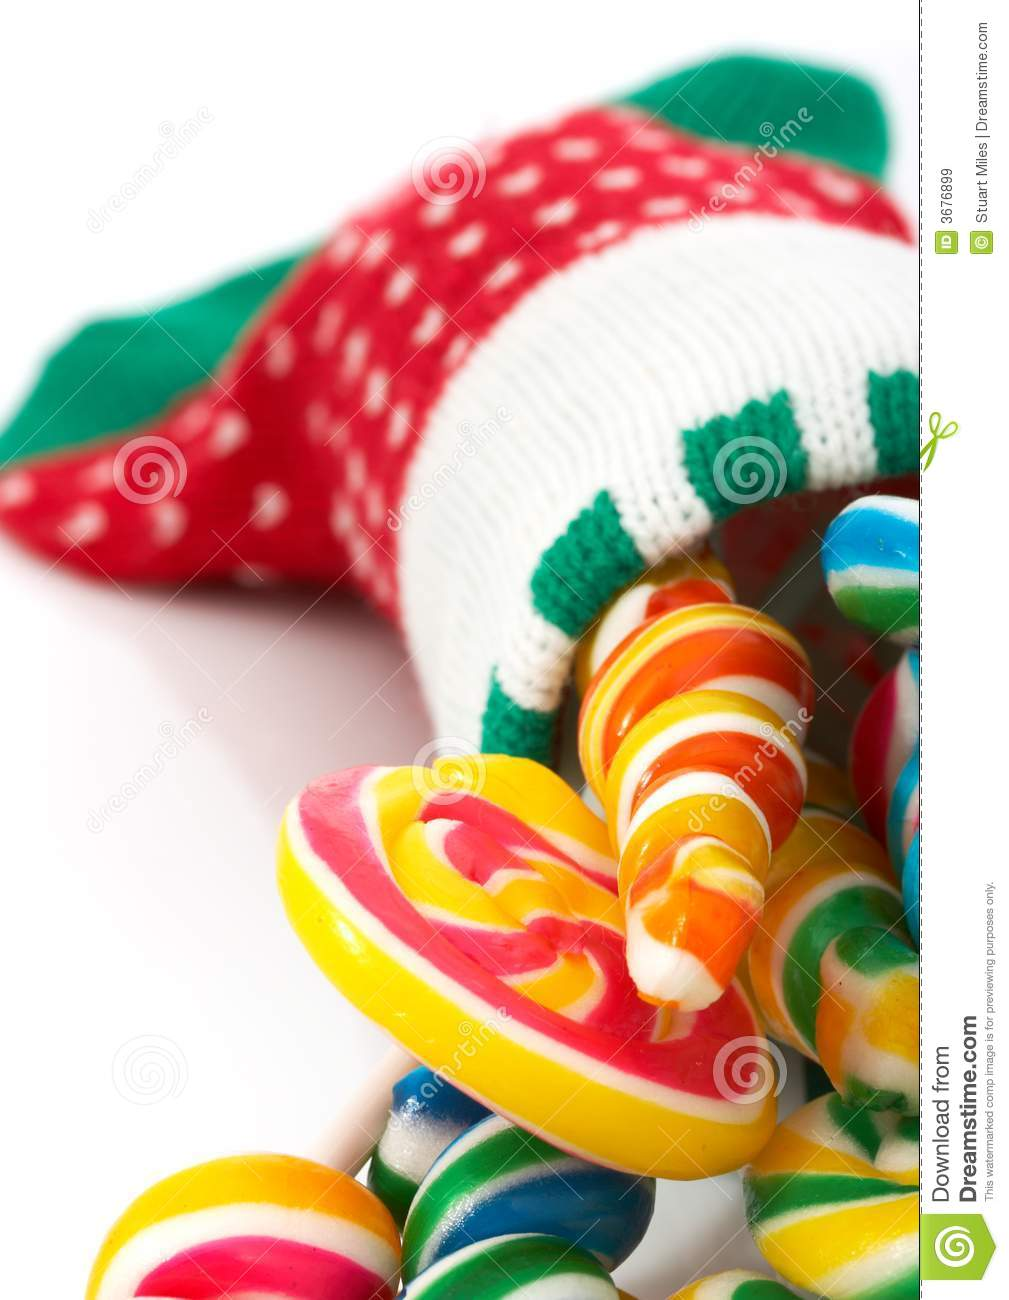 Download Lollipop di natale immagine stock. Immagine di stagione - 3676899